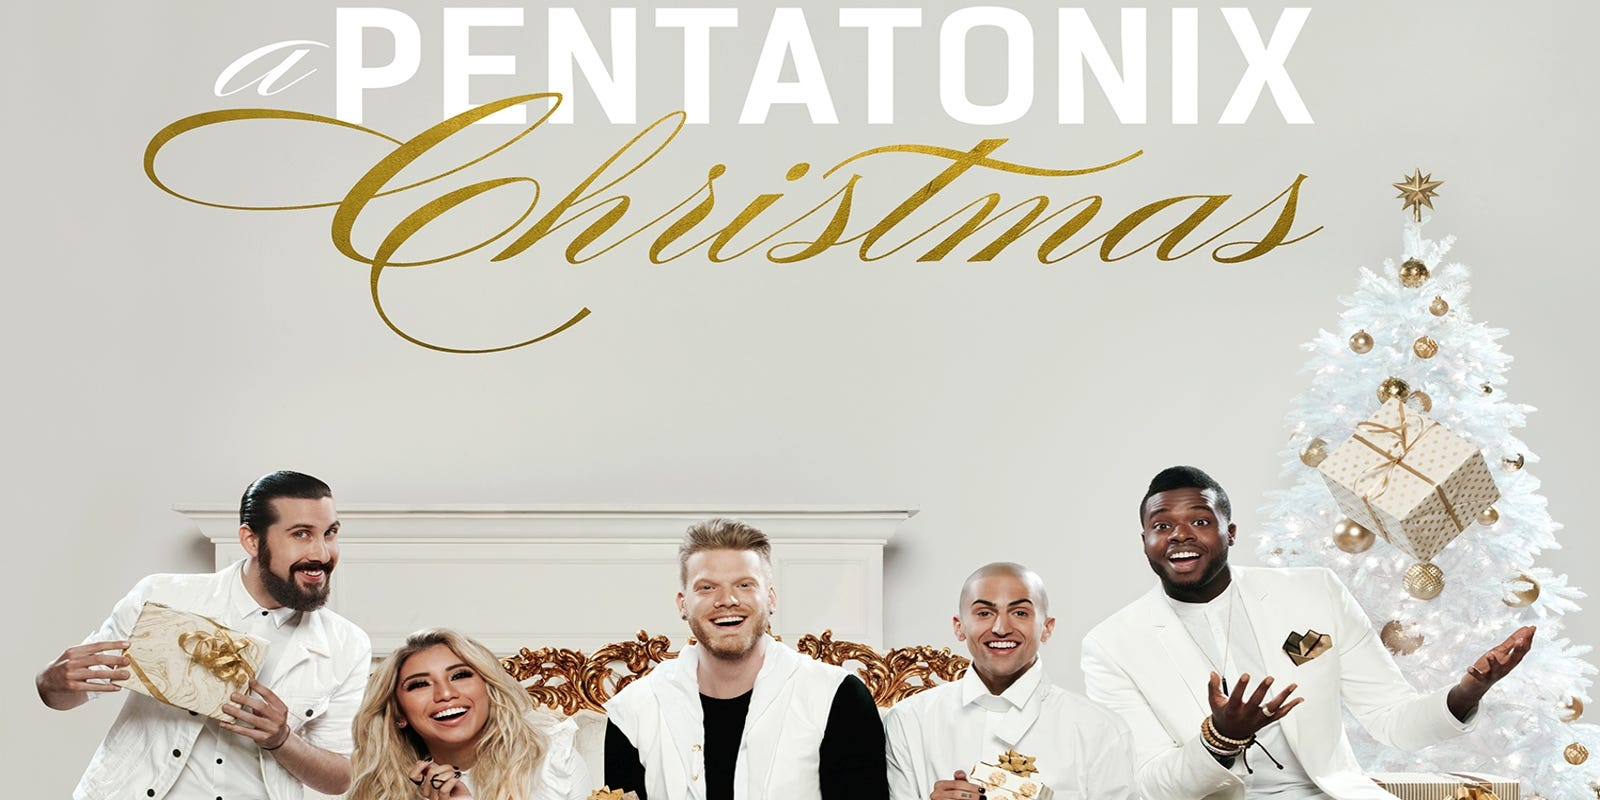 'A Pentatonix Christmas' delivers holiday harmony